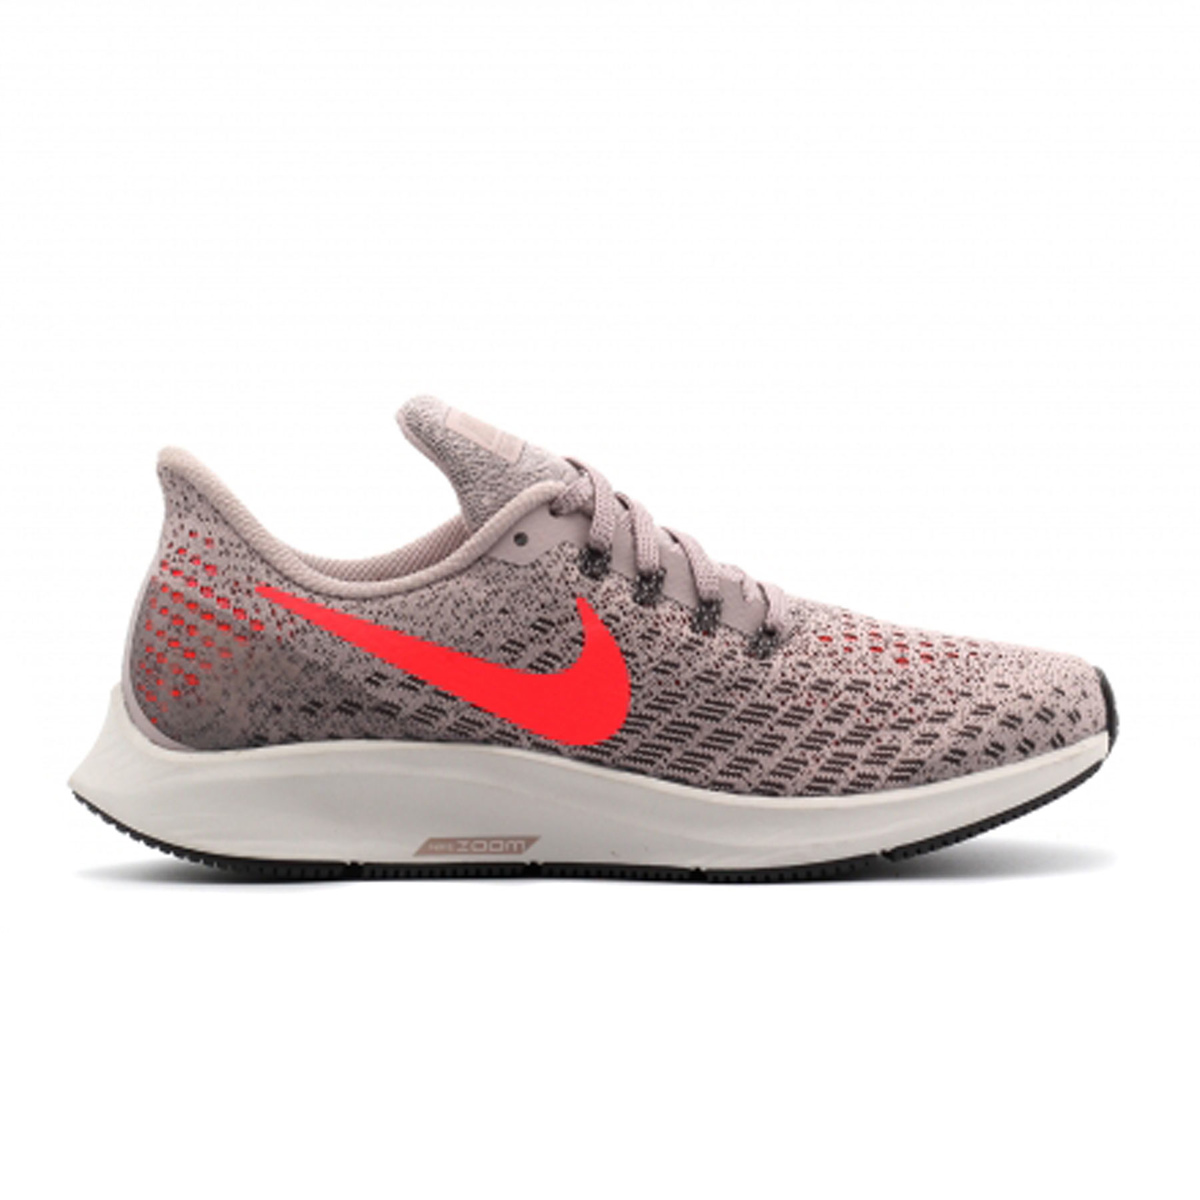 detailed look 4fd6f 51fa8 nike -942855-air zoom pegasus 35 donna-scarpe-running-donna-035896001 602 1.jpg